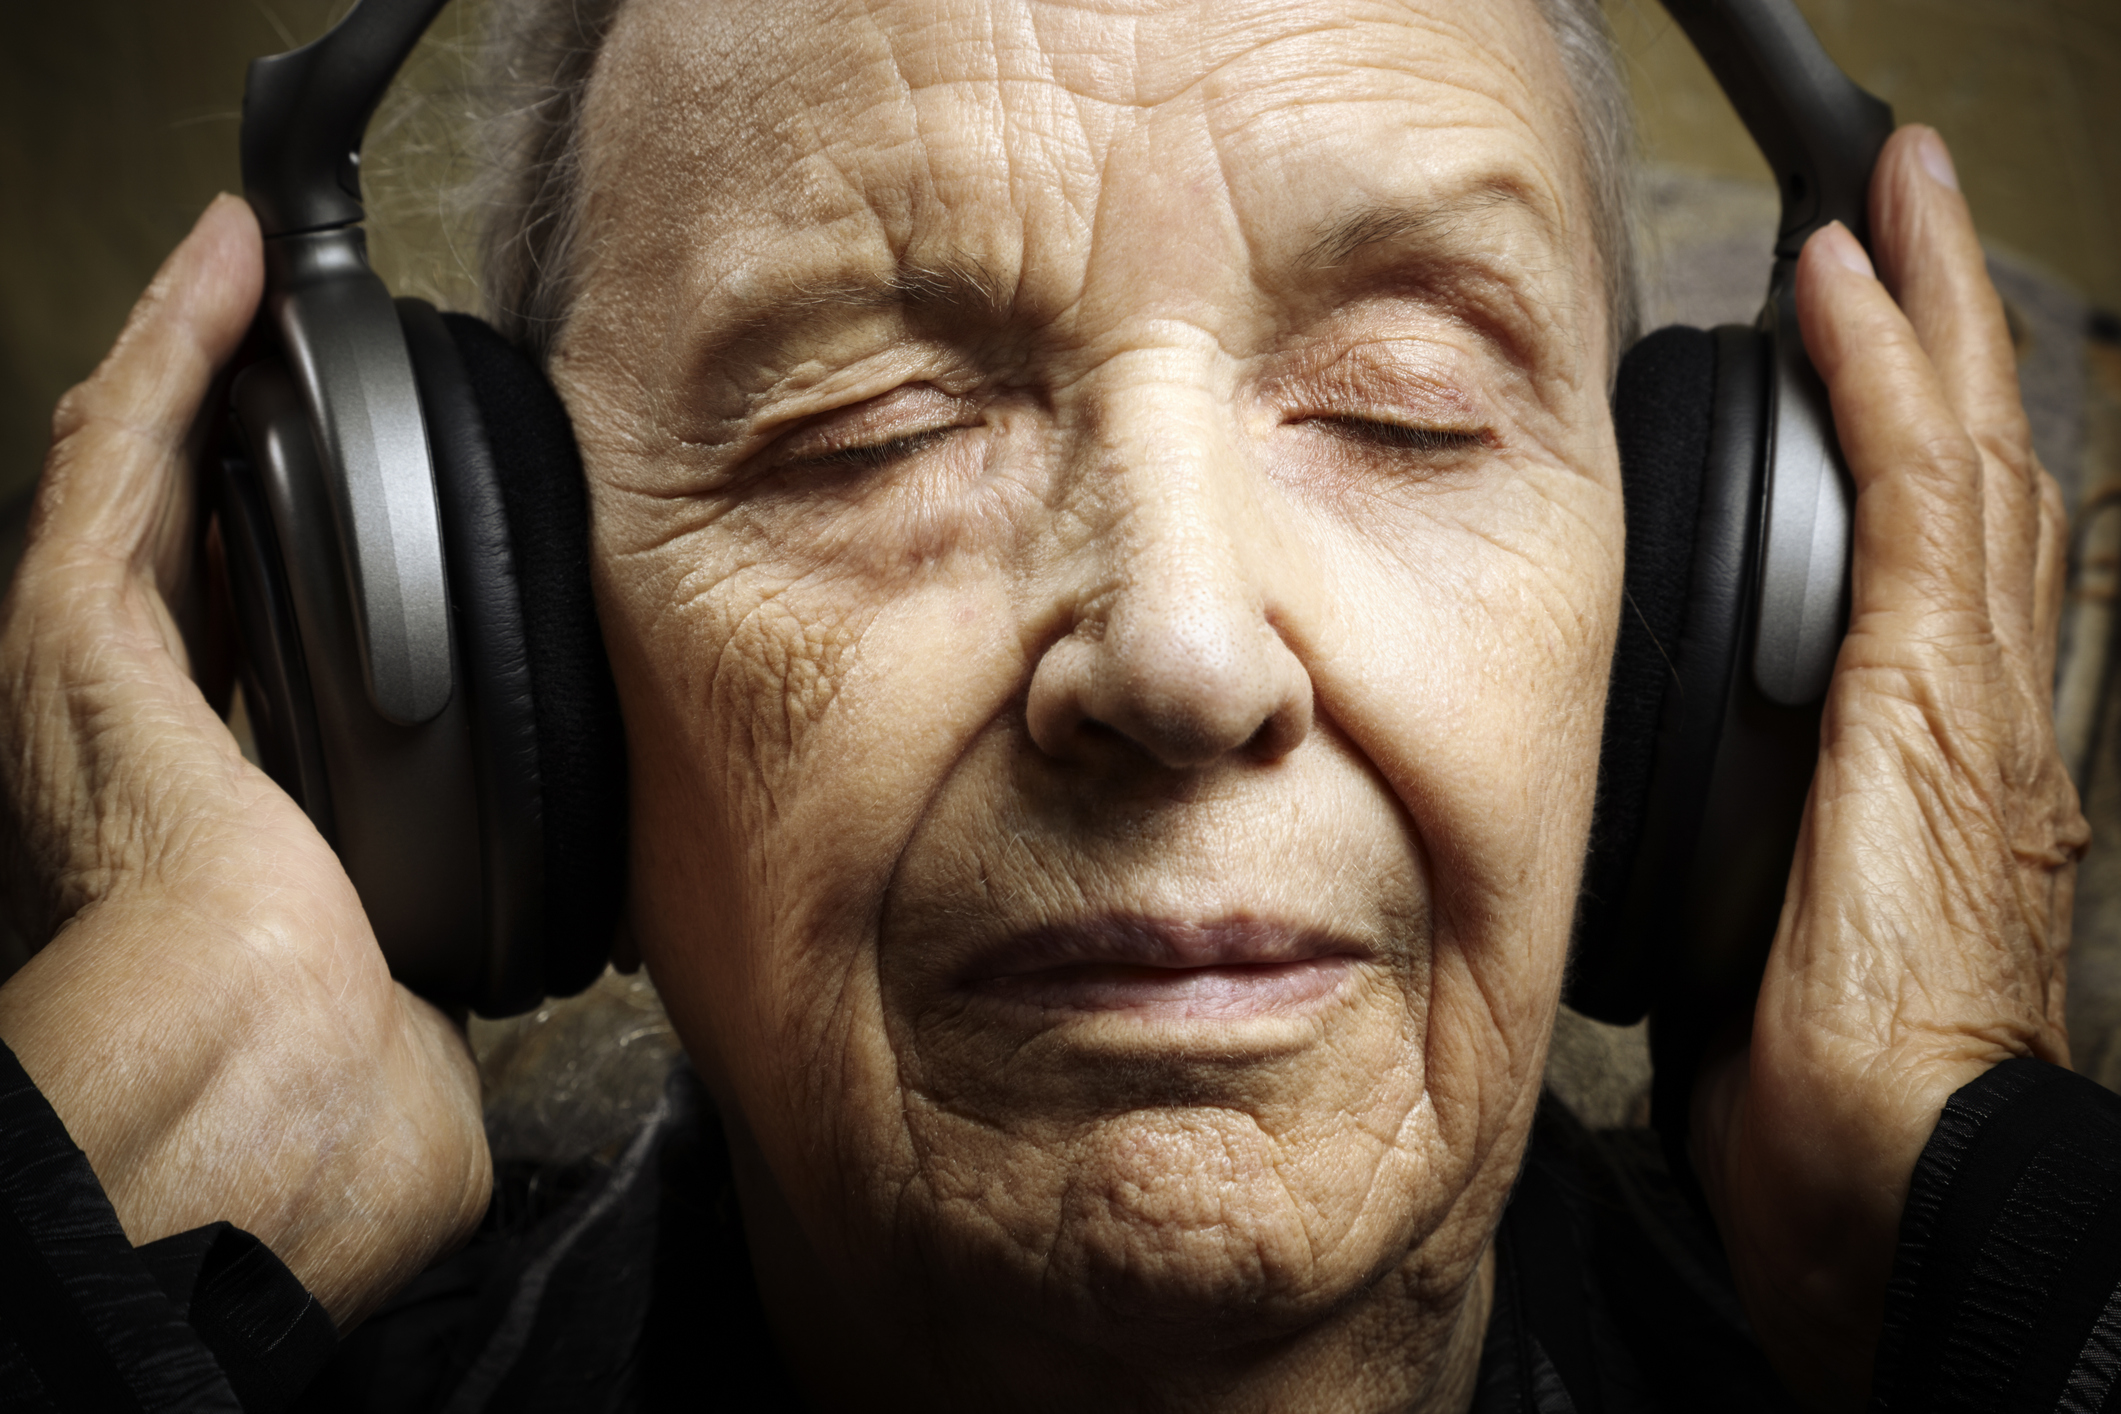 Bethesda music therapy for seniors can range from listening to music, like the senior in this photo, or playing music! The benefits of music therapy for seniors include improved memory and reduced stress.